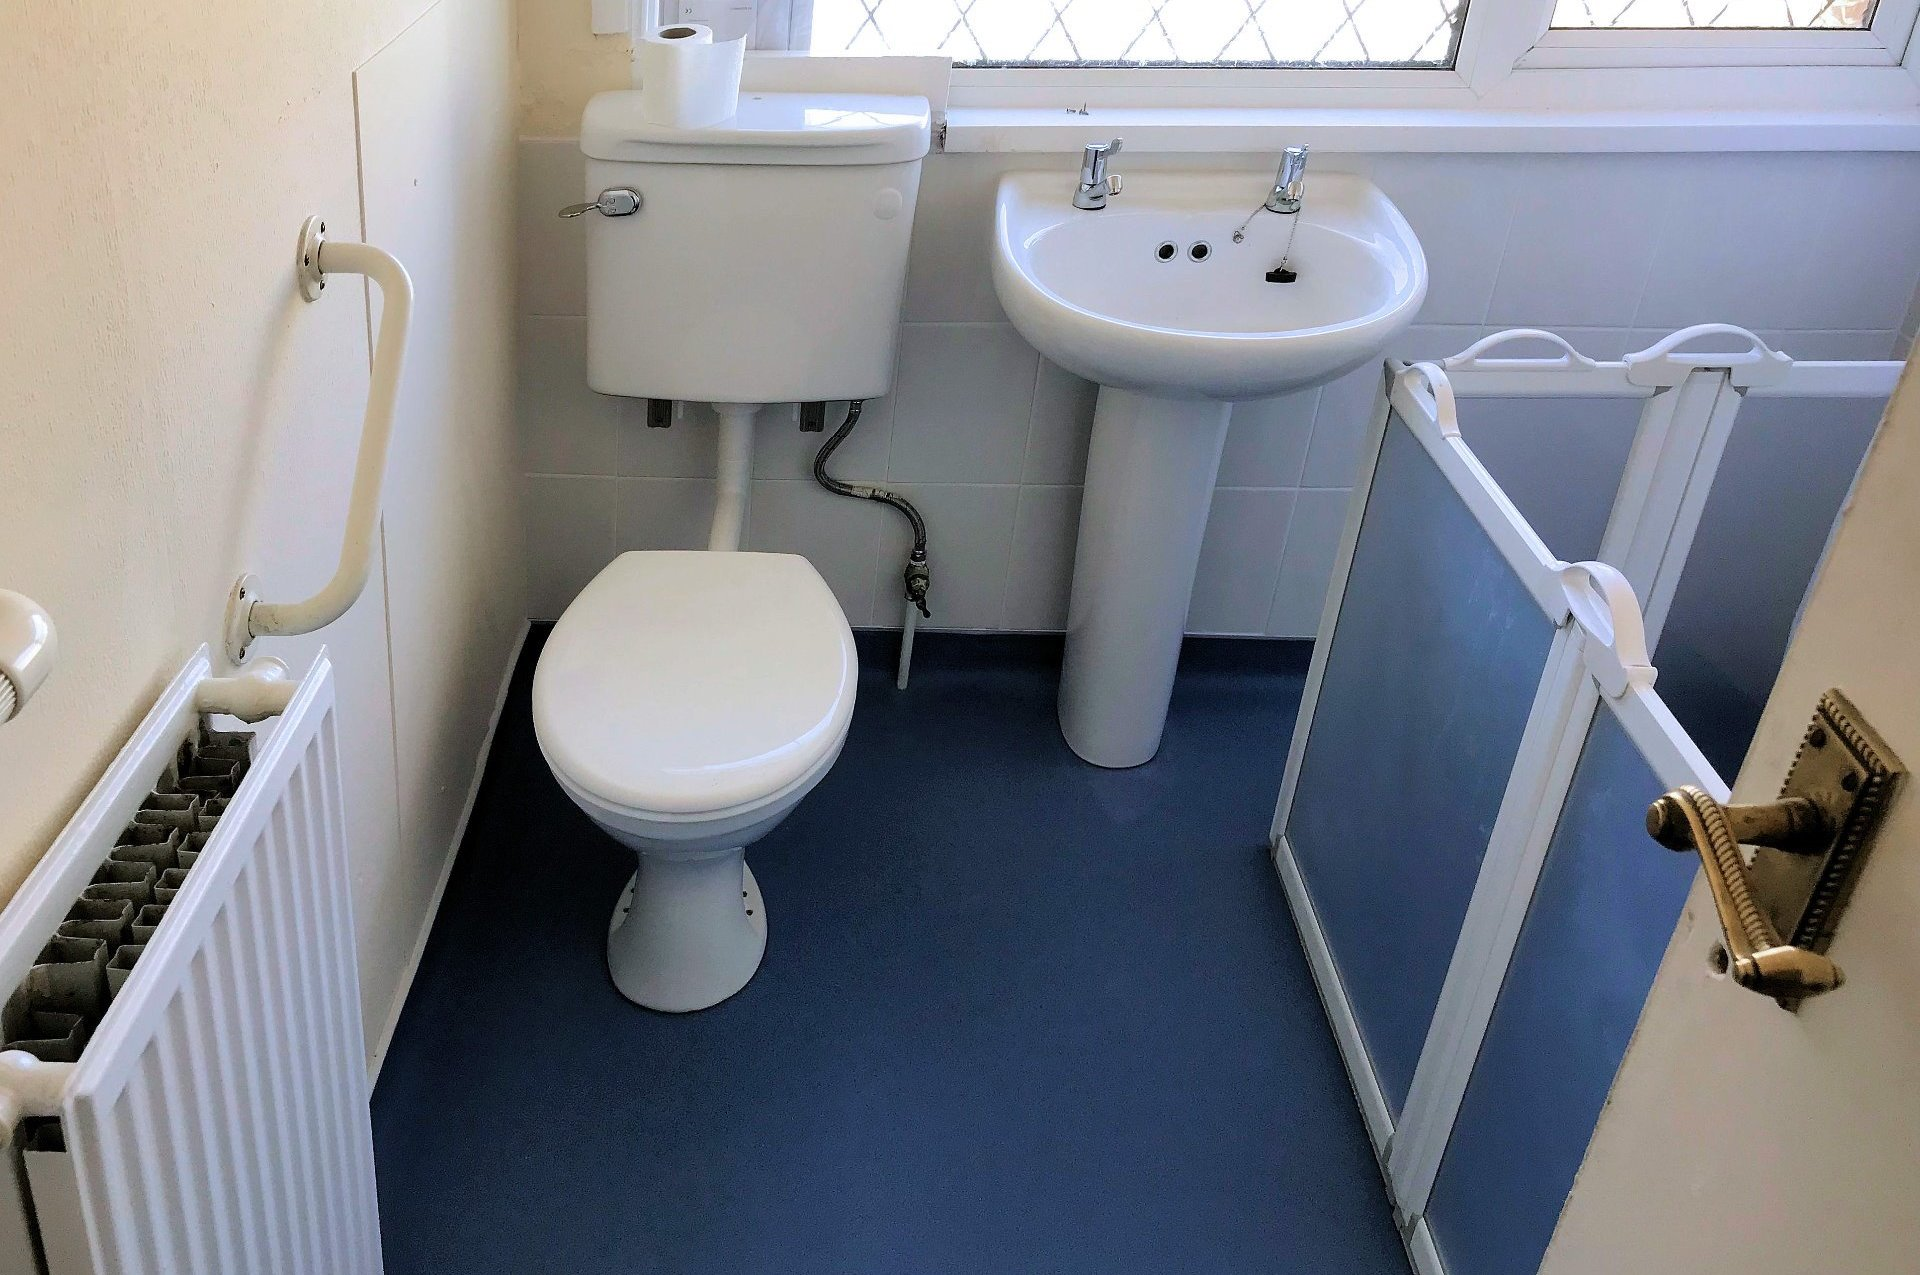 Easy access walk in bathroom adaption